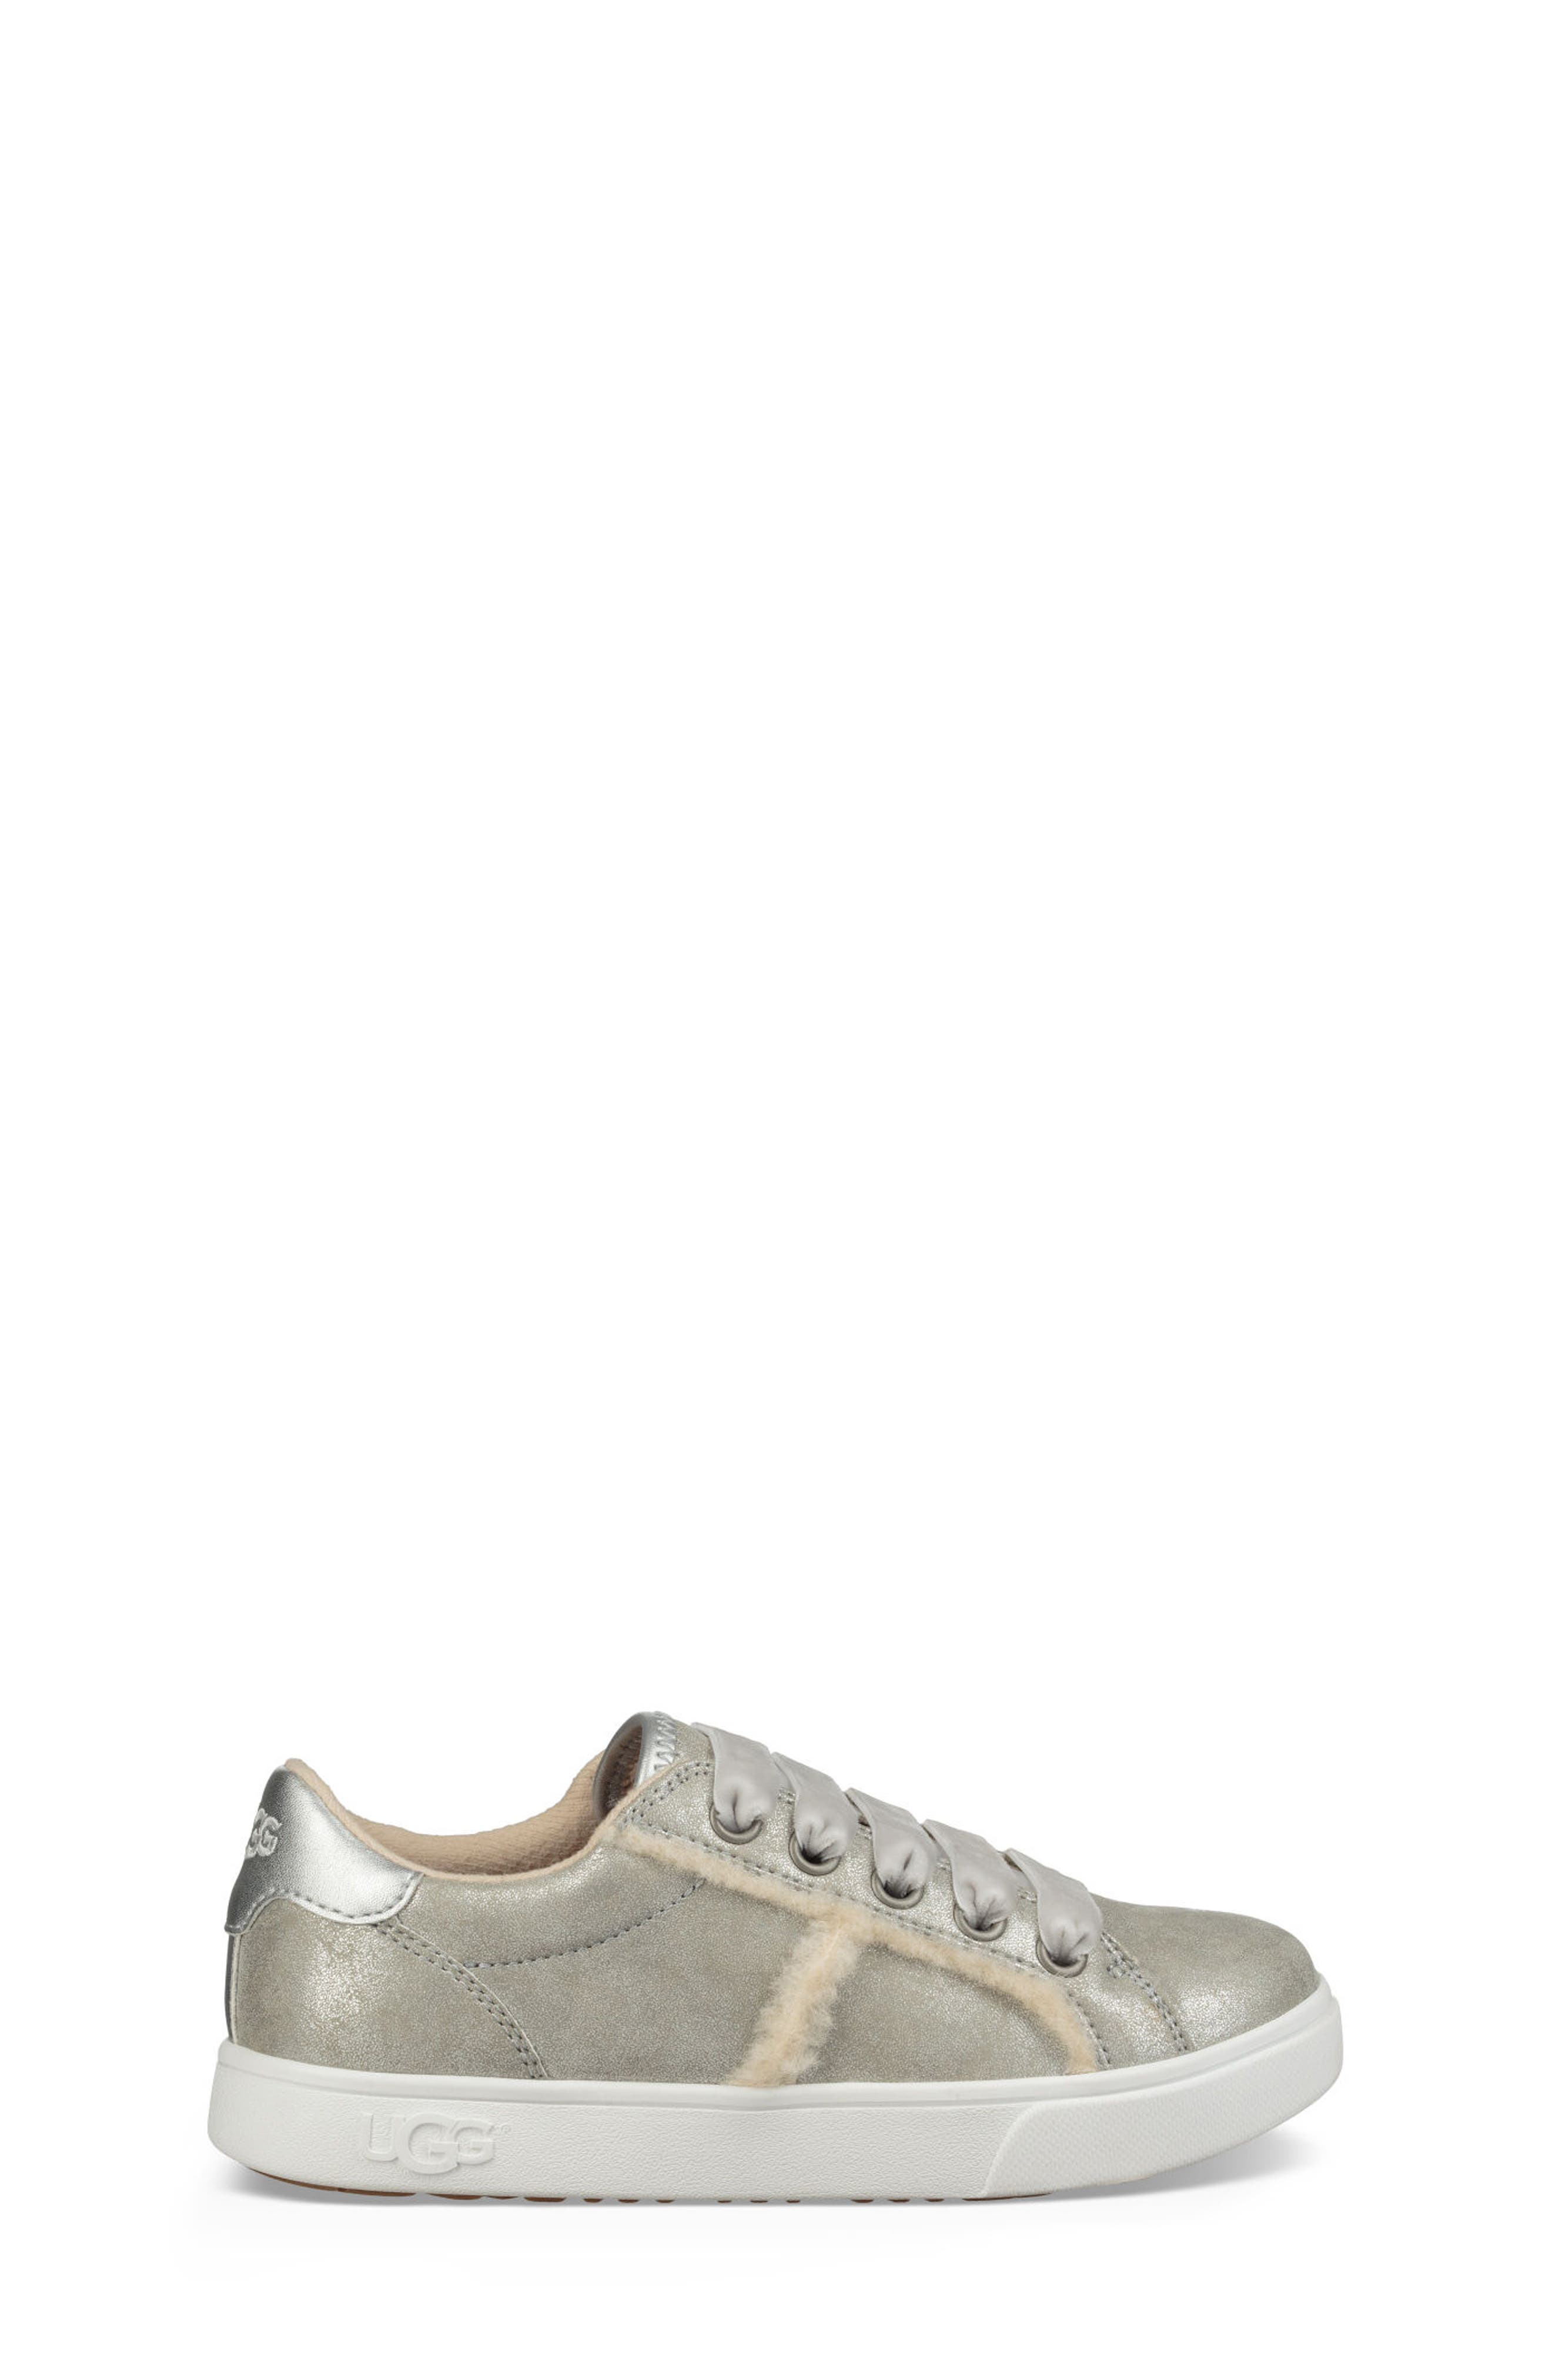 UGG<SUP>®</SUP>, Alanna Low Top Sneaker, Alternate thumbnail 2, color, SILVER